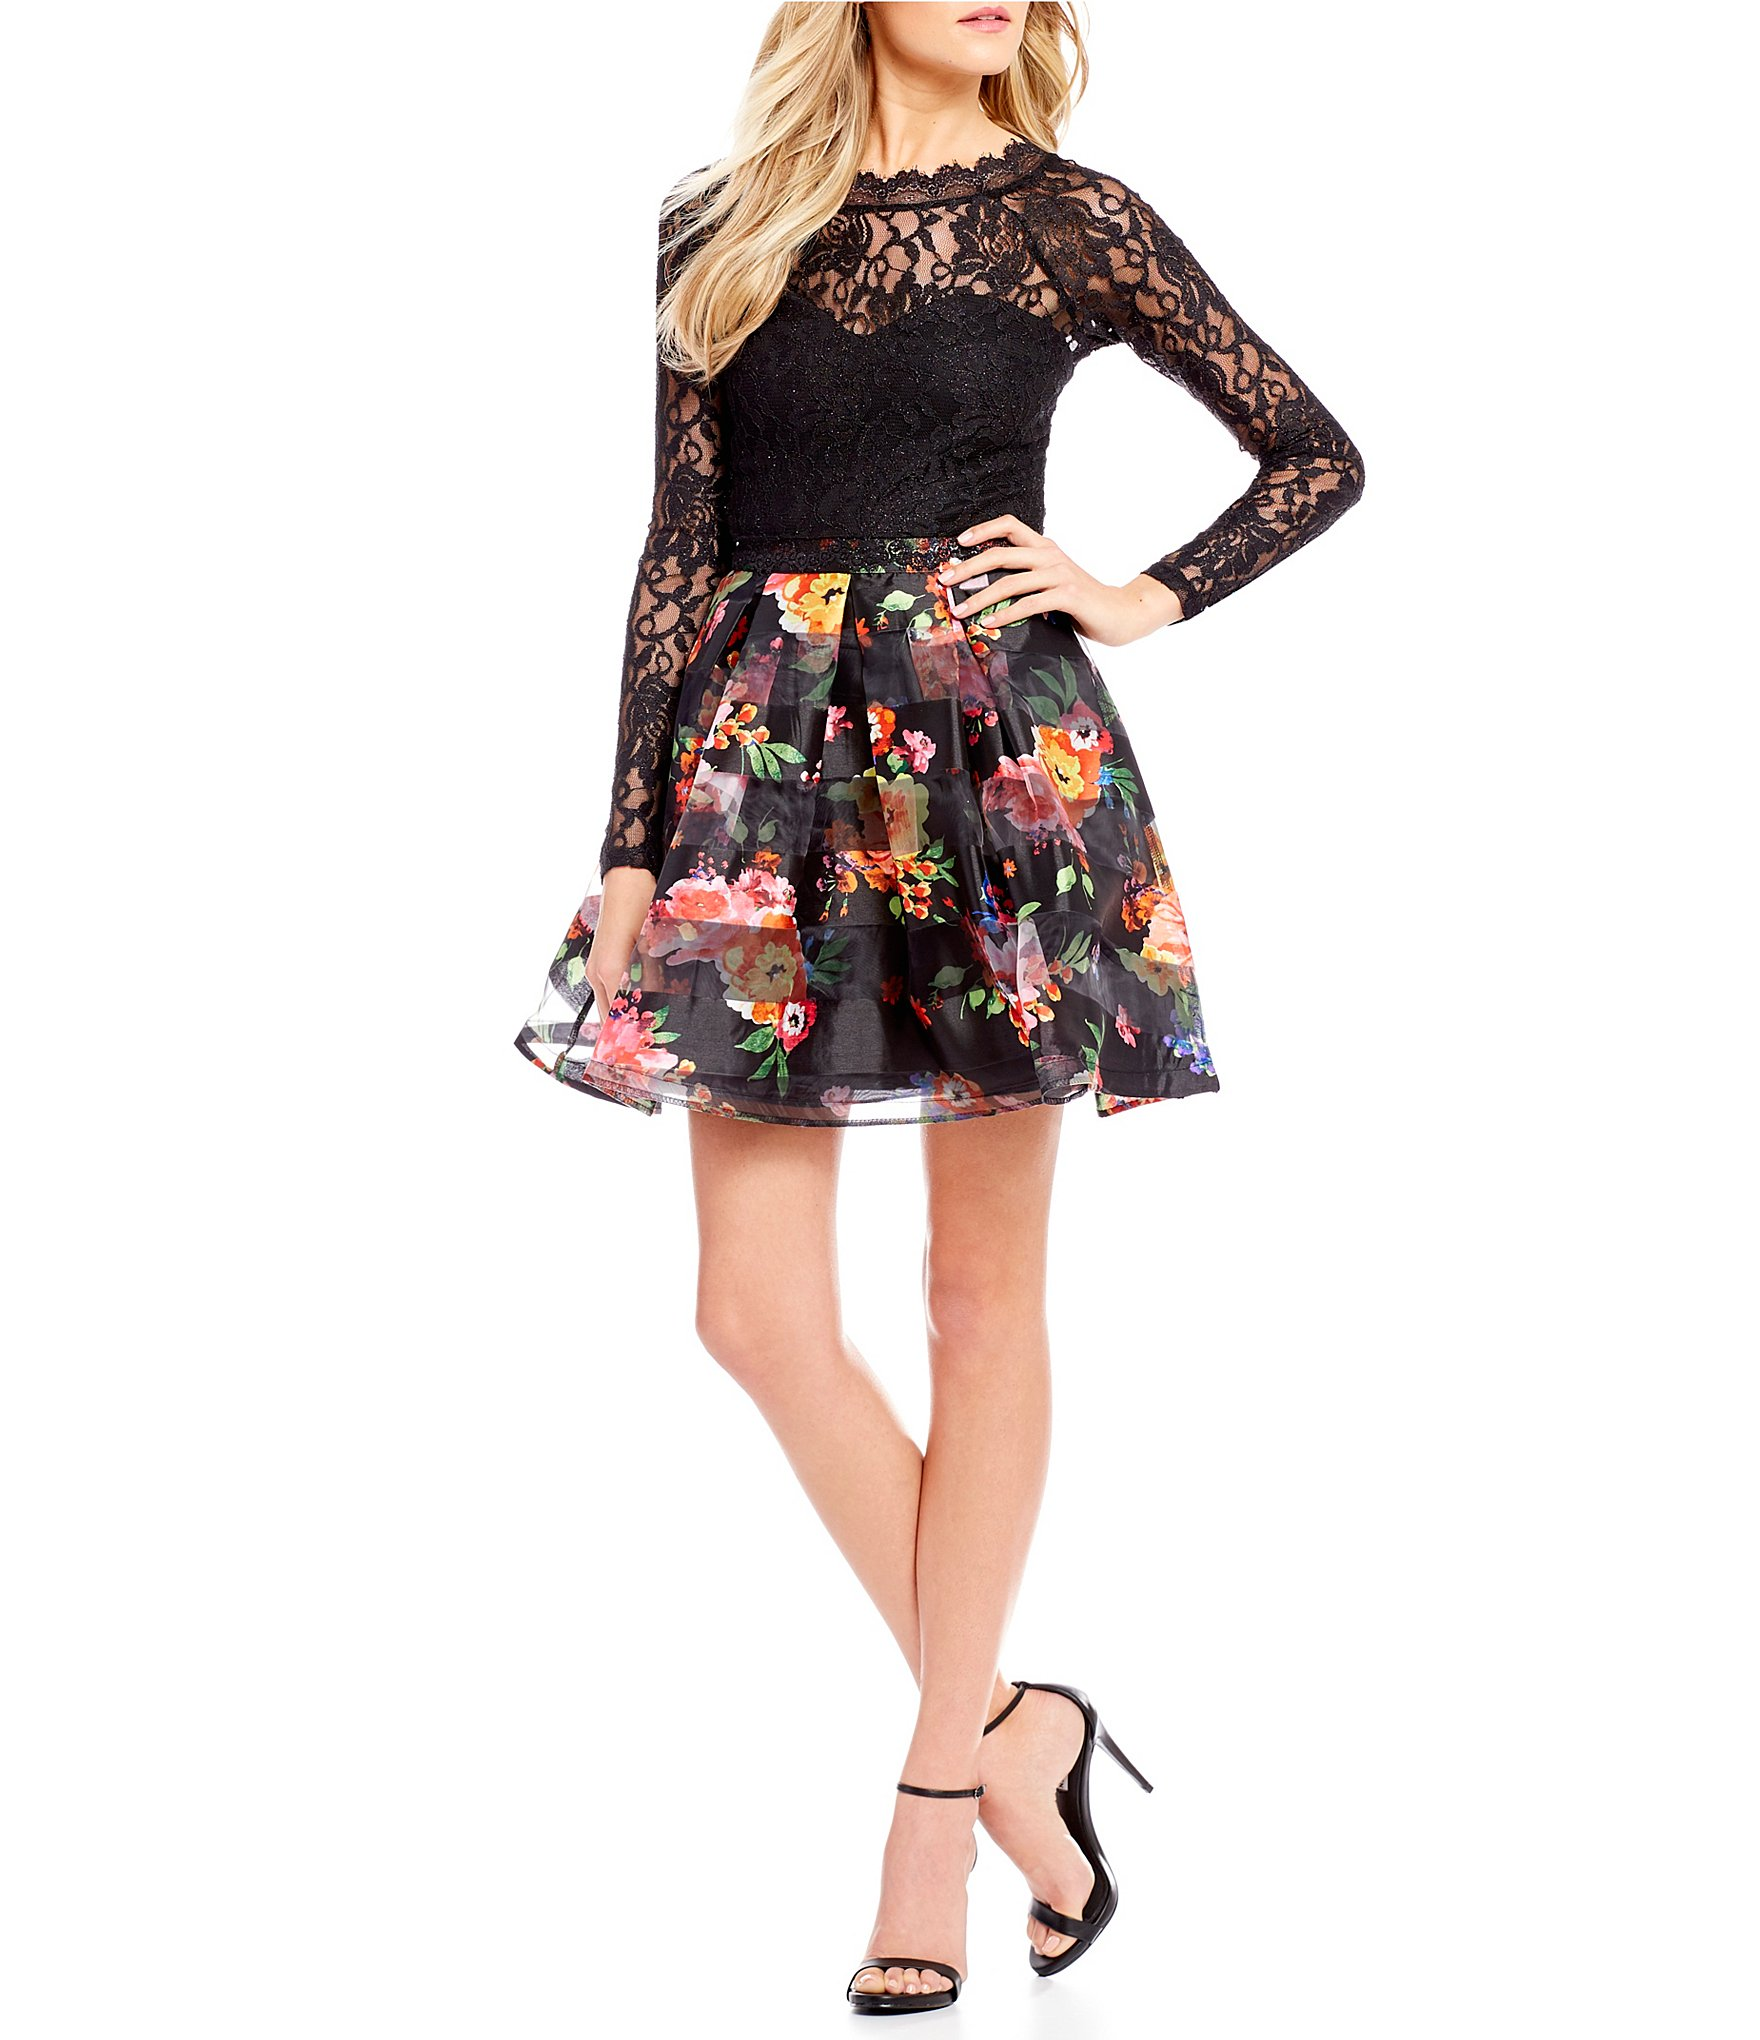 Dillards Plus Size Dresses For Special Occasions